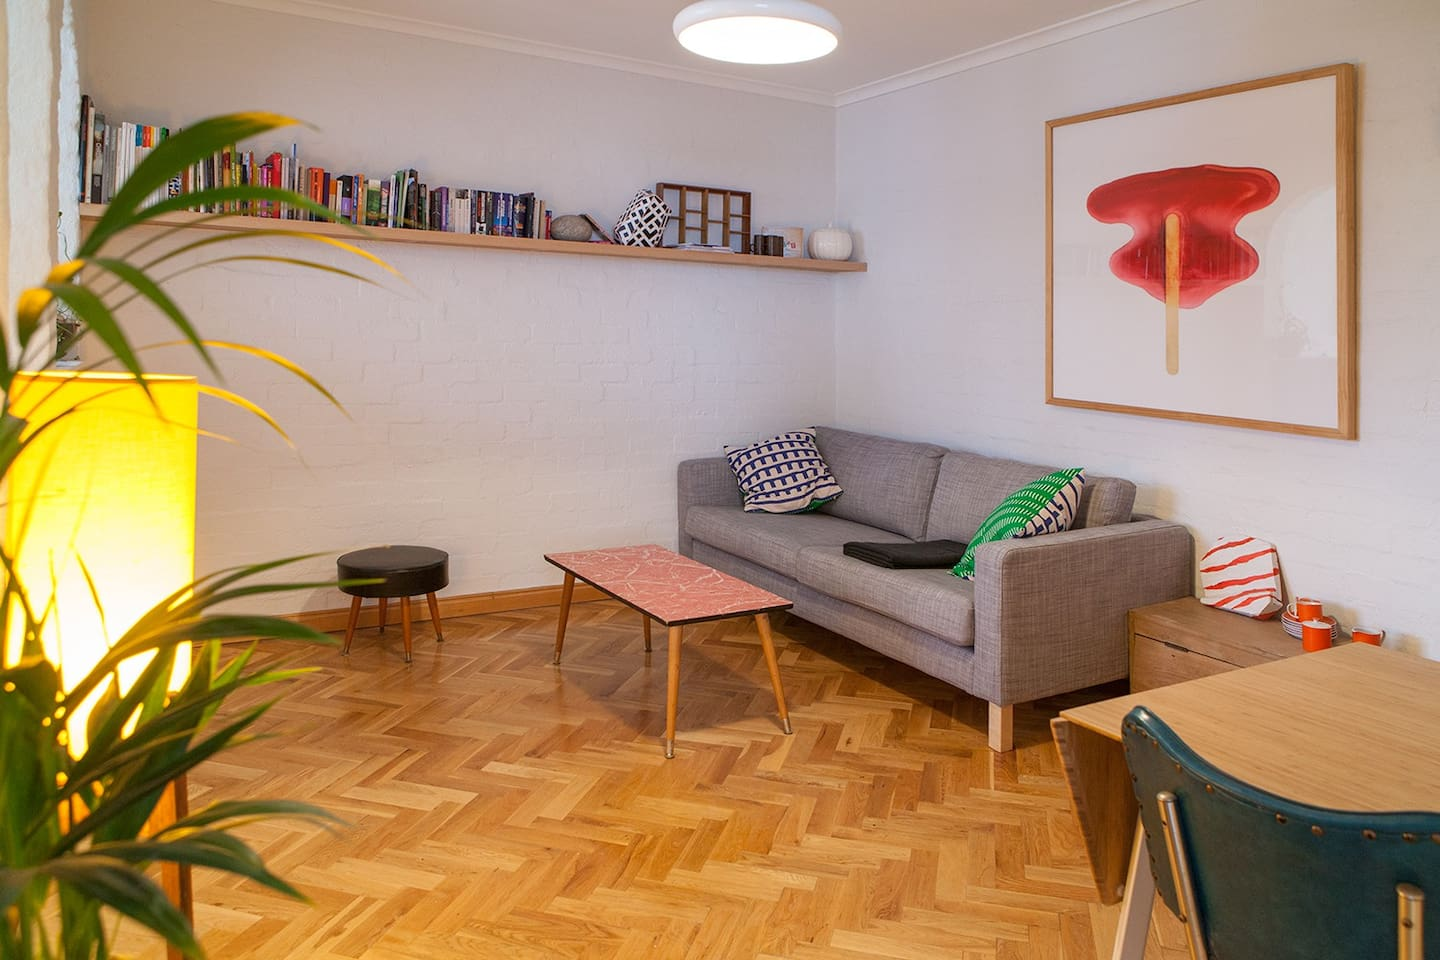 Living Room is spacious and comfortable